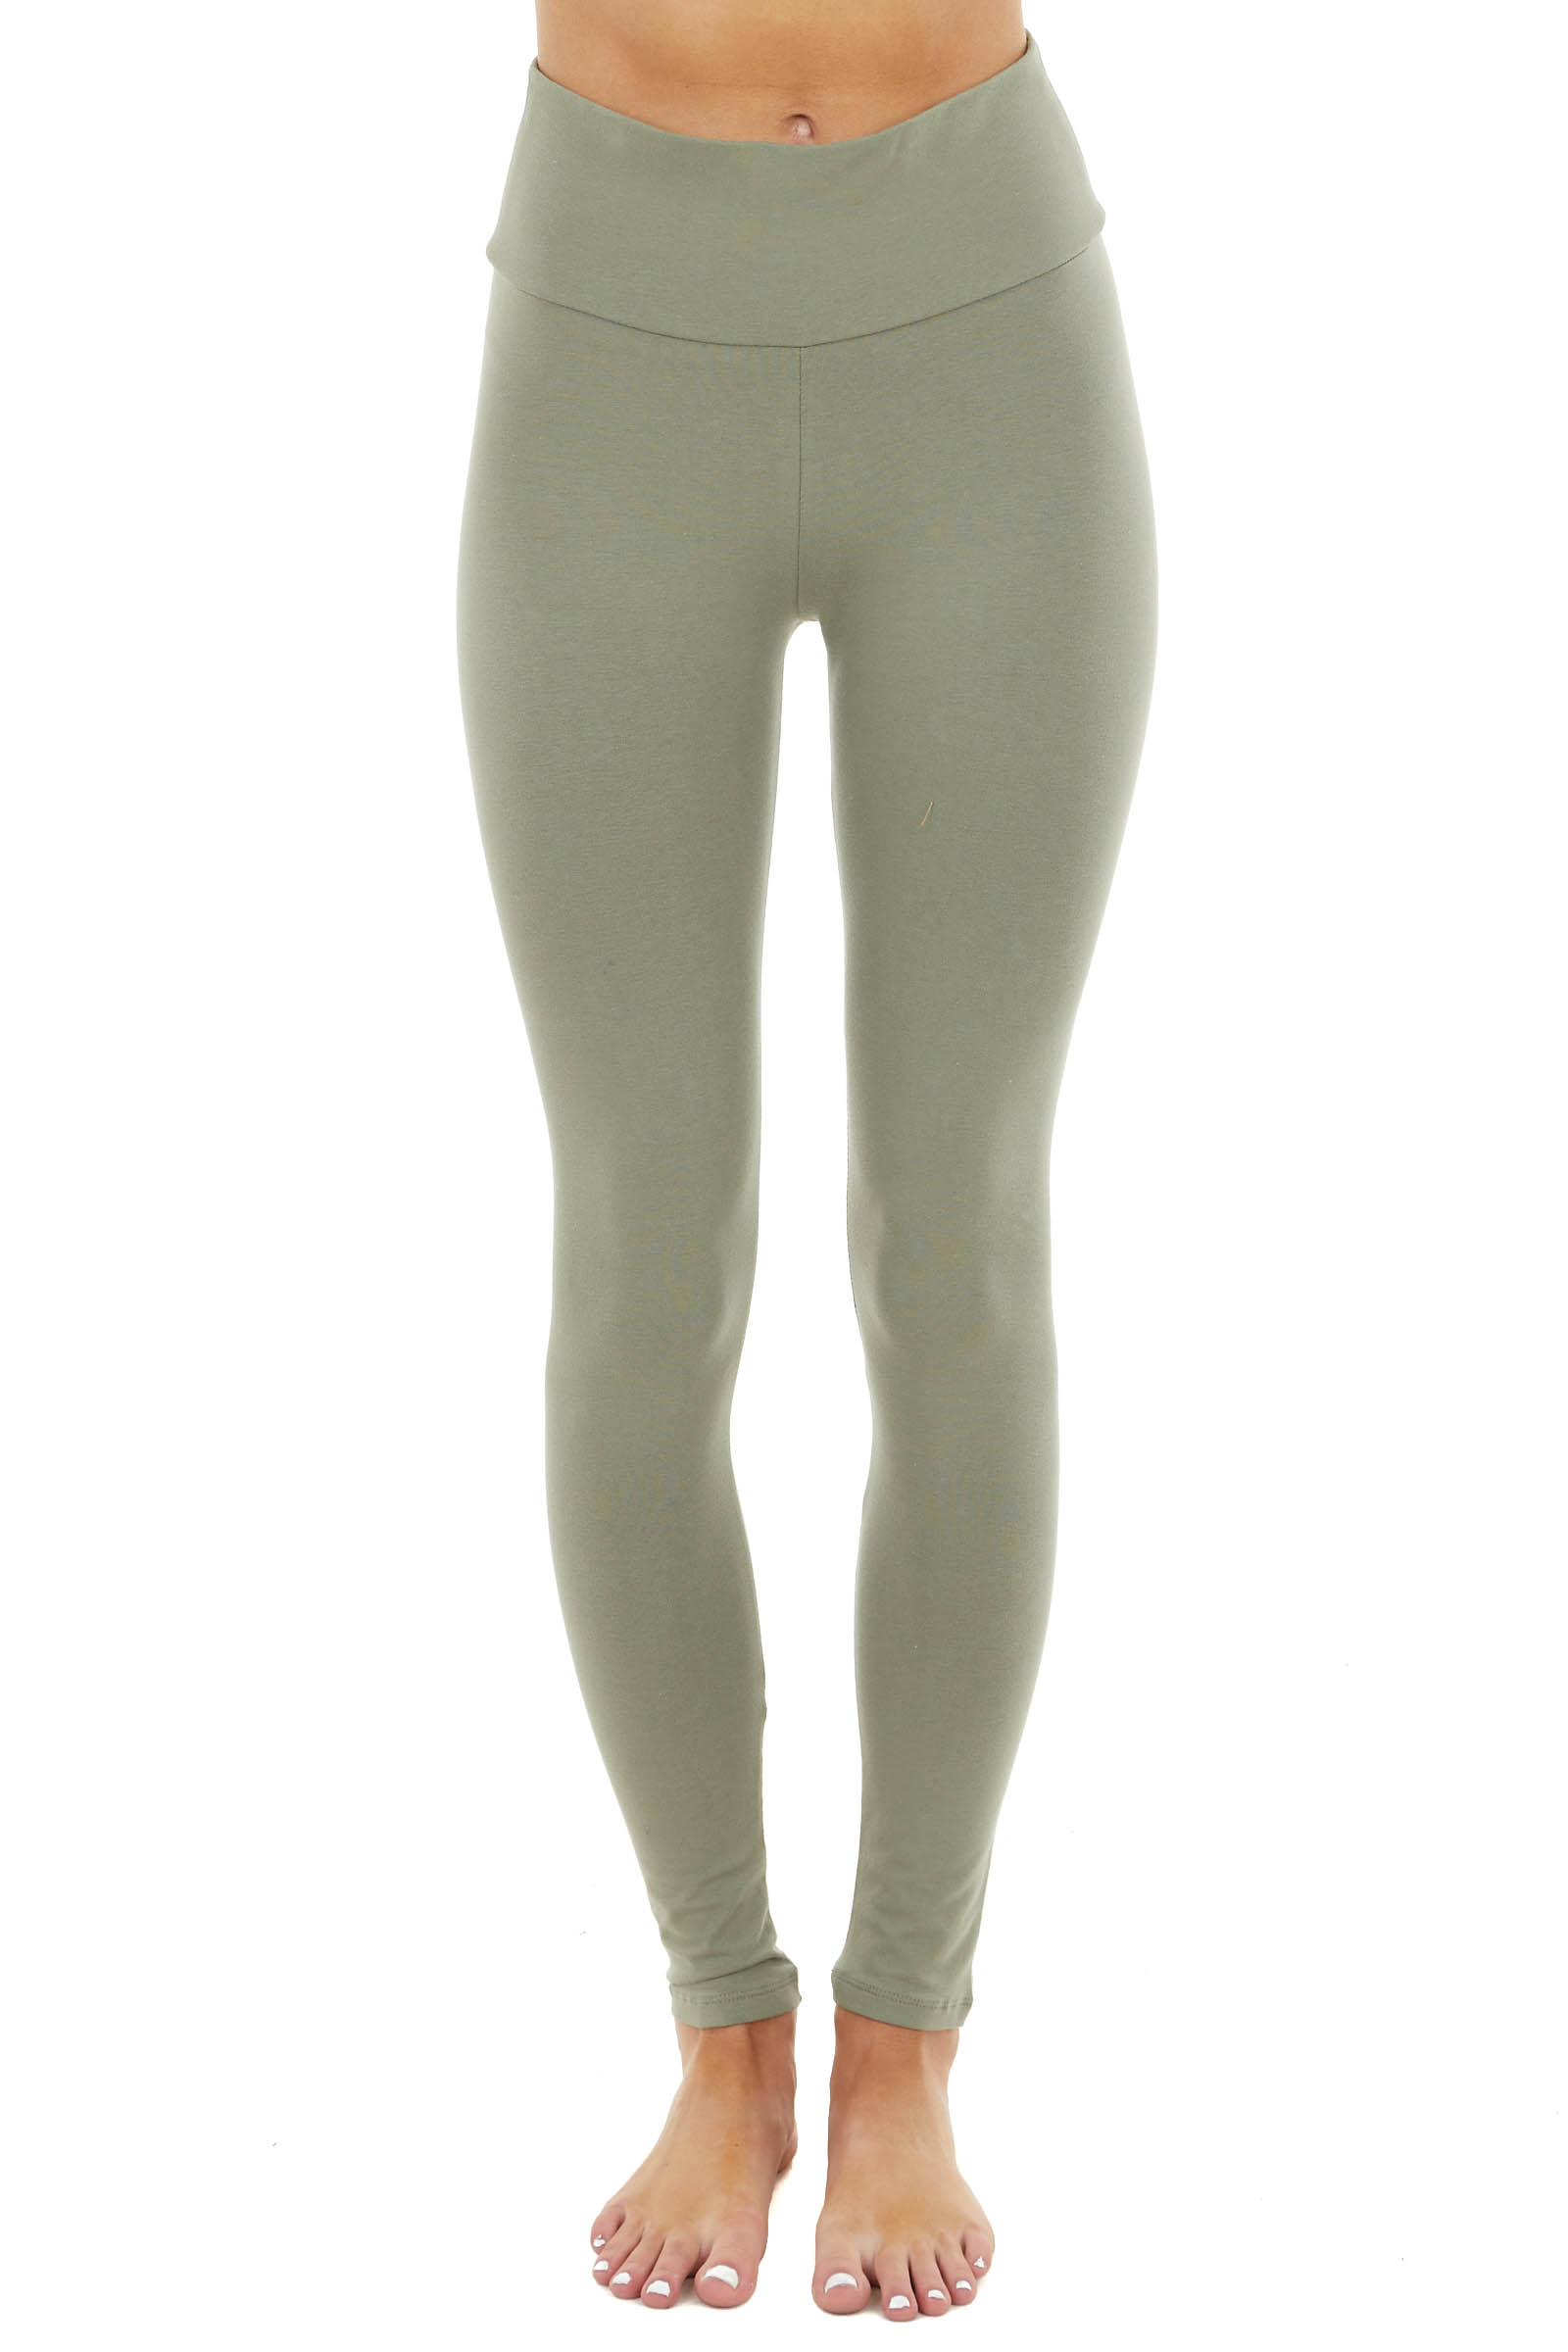 Sage Comfy Stretchy Knit Leggings with Banded High Waist